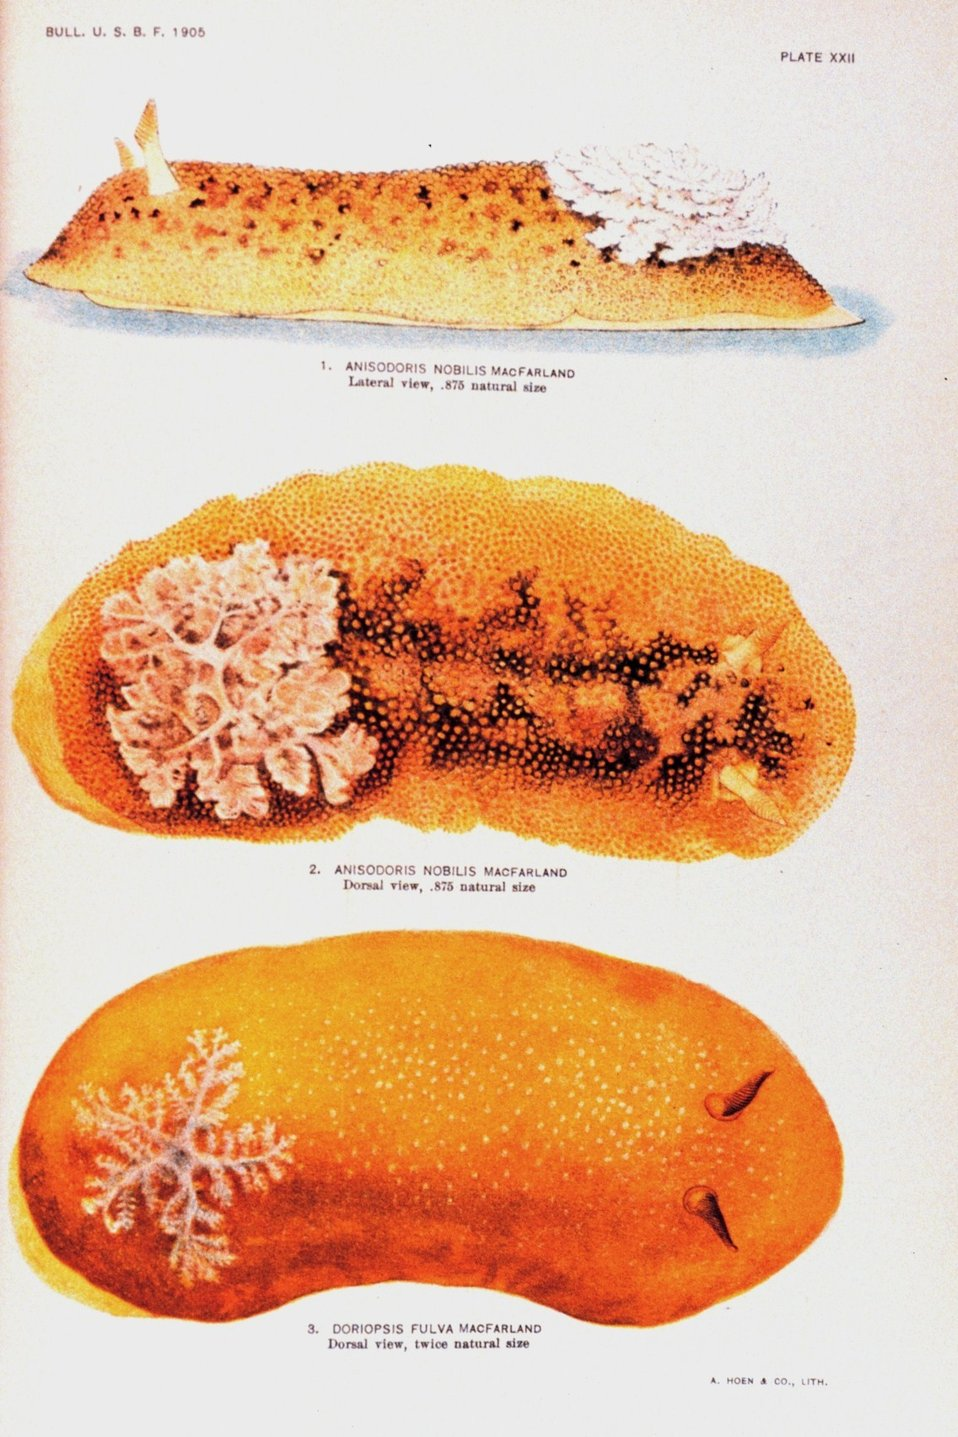 Nudibranchs.  1. Anisodoris nobilis MacFarland - Lateral view.  2.  Anisodoris nobilis MacFarland -- Dorsal view.  3.  Doriopsis fulva Macfarland -- Dorsal view.  All views painted by Anna B. Nash of the Hopkins Seaside Laboratory.  In: 'Opisthobranchia